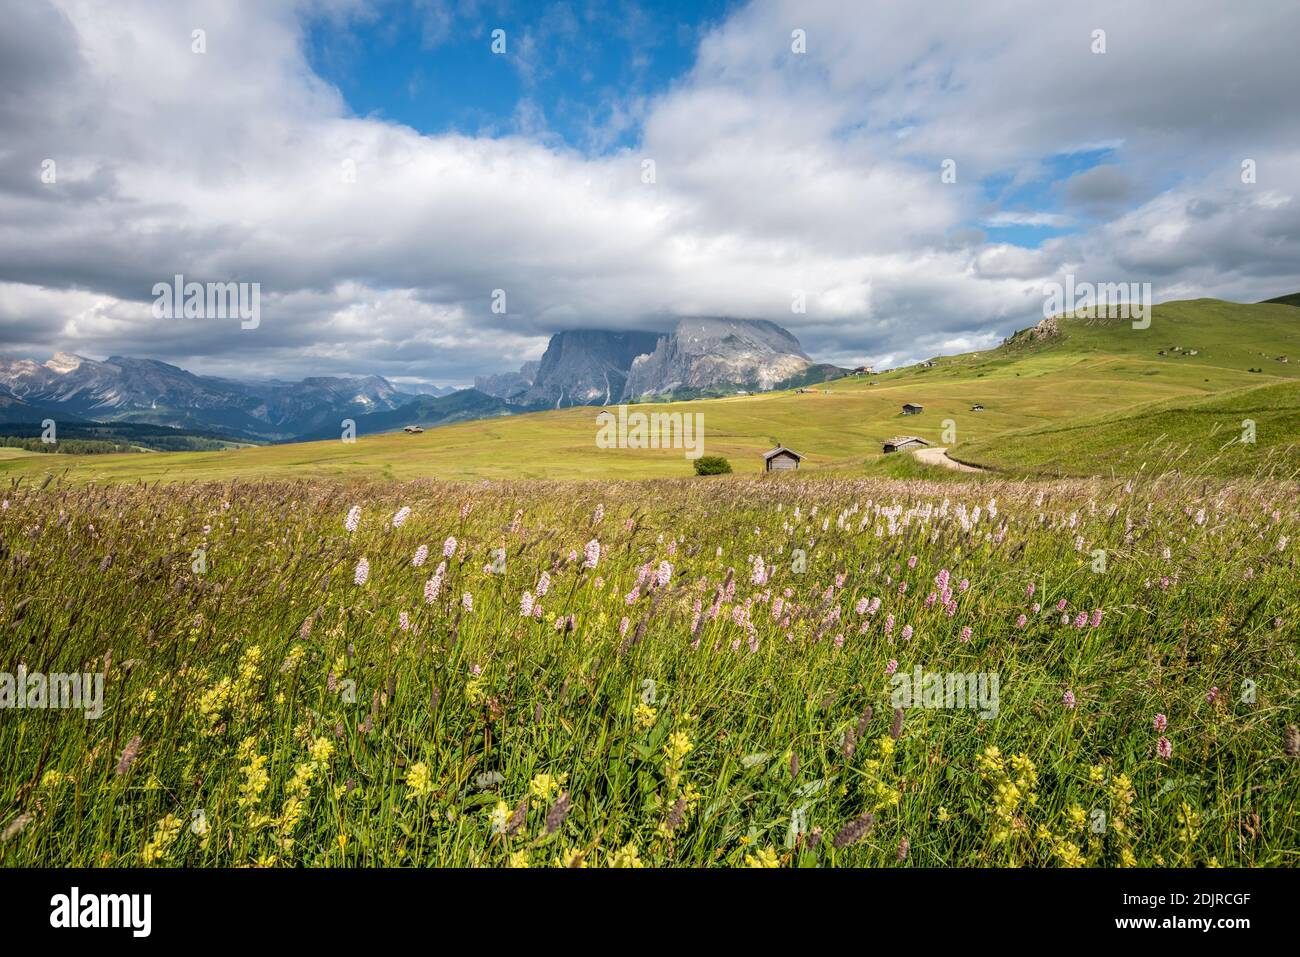 Seiser Alm, Castelrotto, South Tyrol, Bolzano Province, Italy. Flower meadow on the Alpe di Siusi, with the Sassolungo in the background Stock Photo